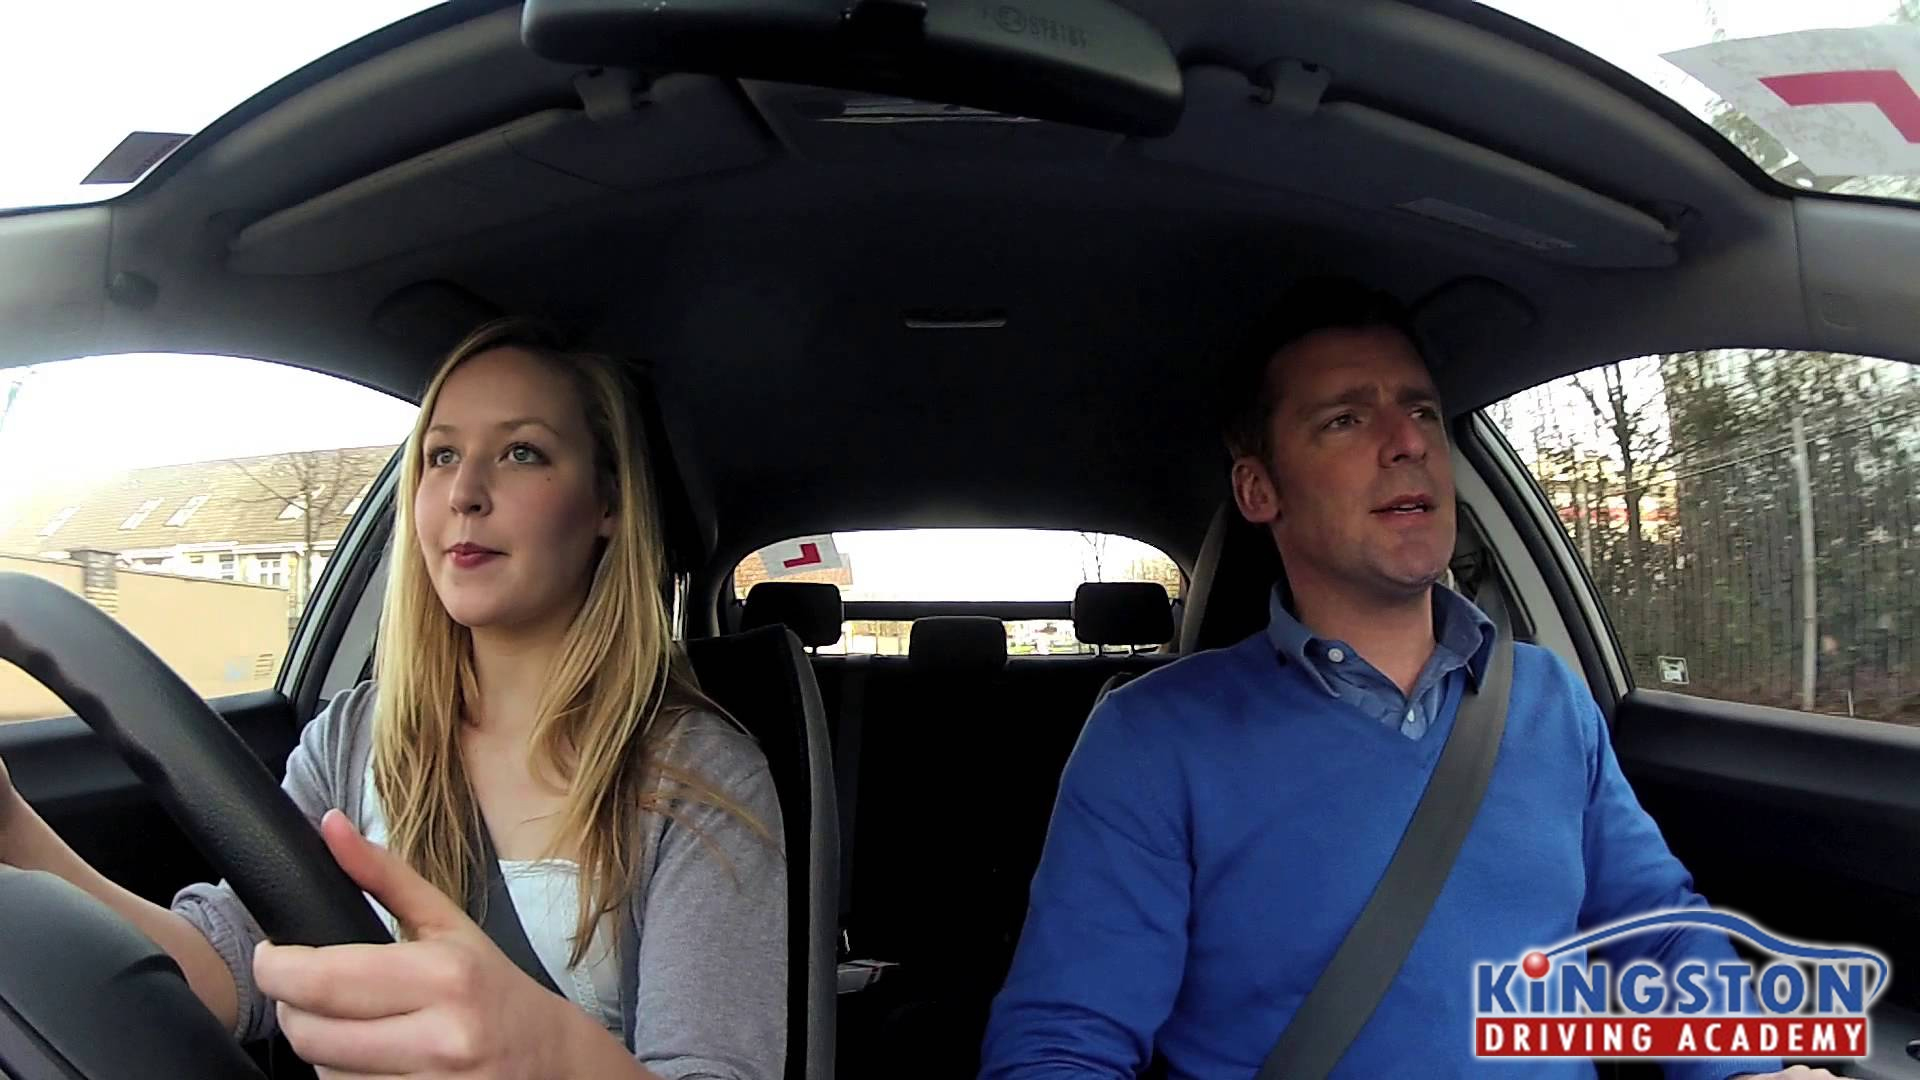 Starting driving lessons? Here are some pointers on how to choose the right driving class